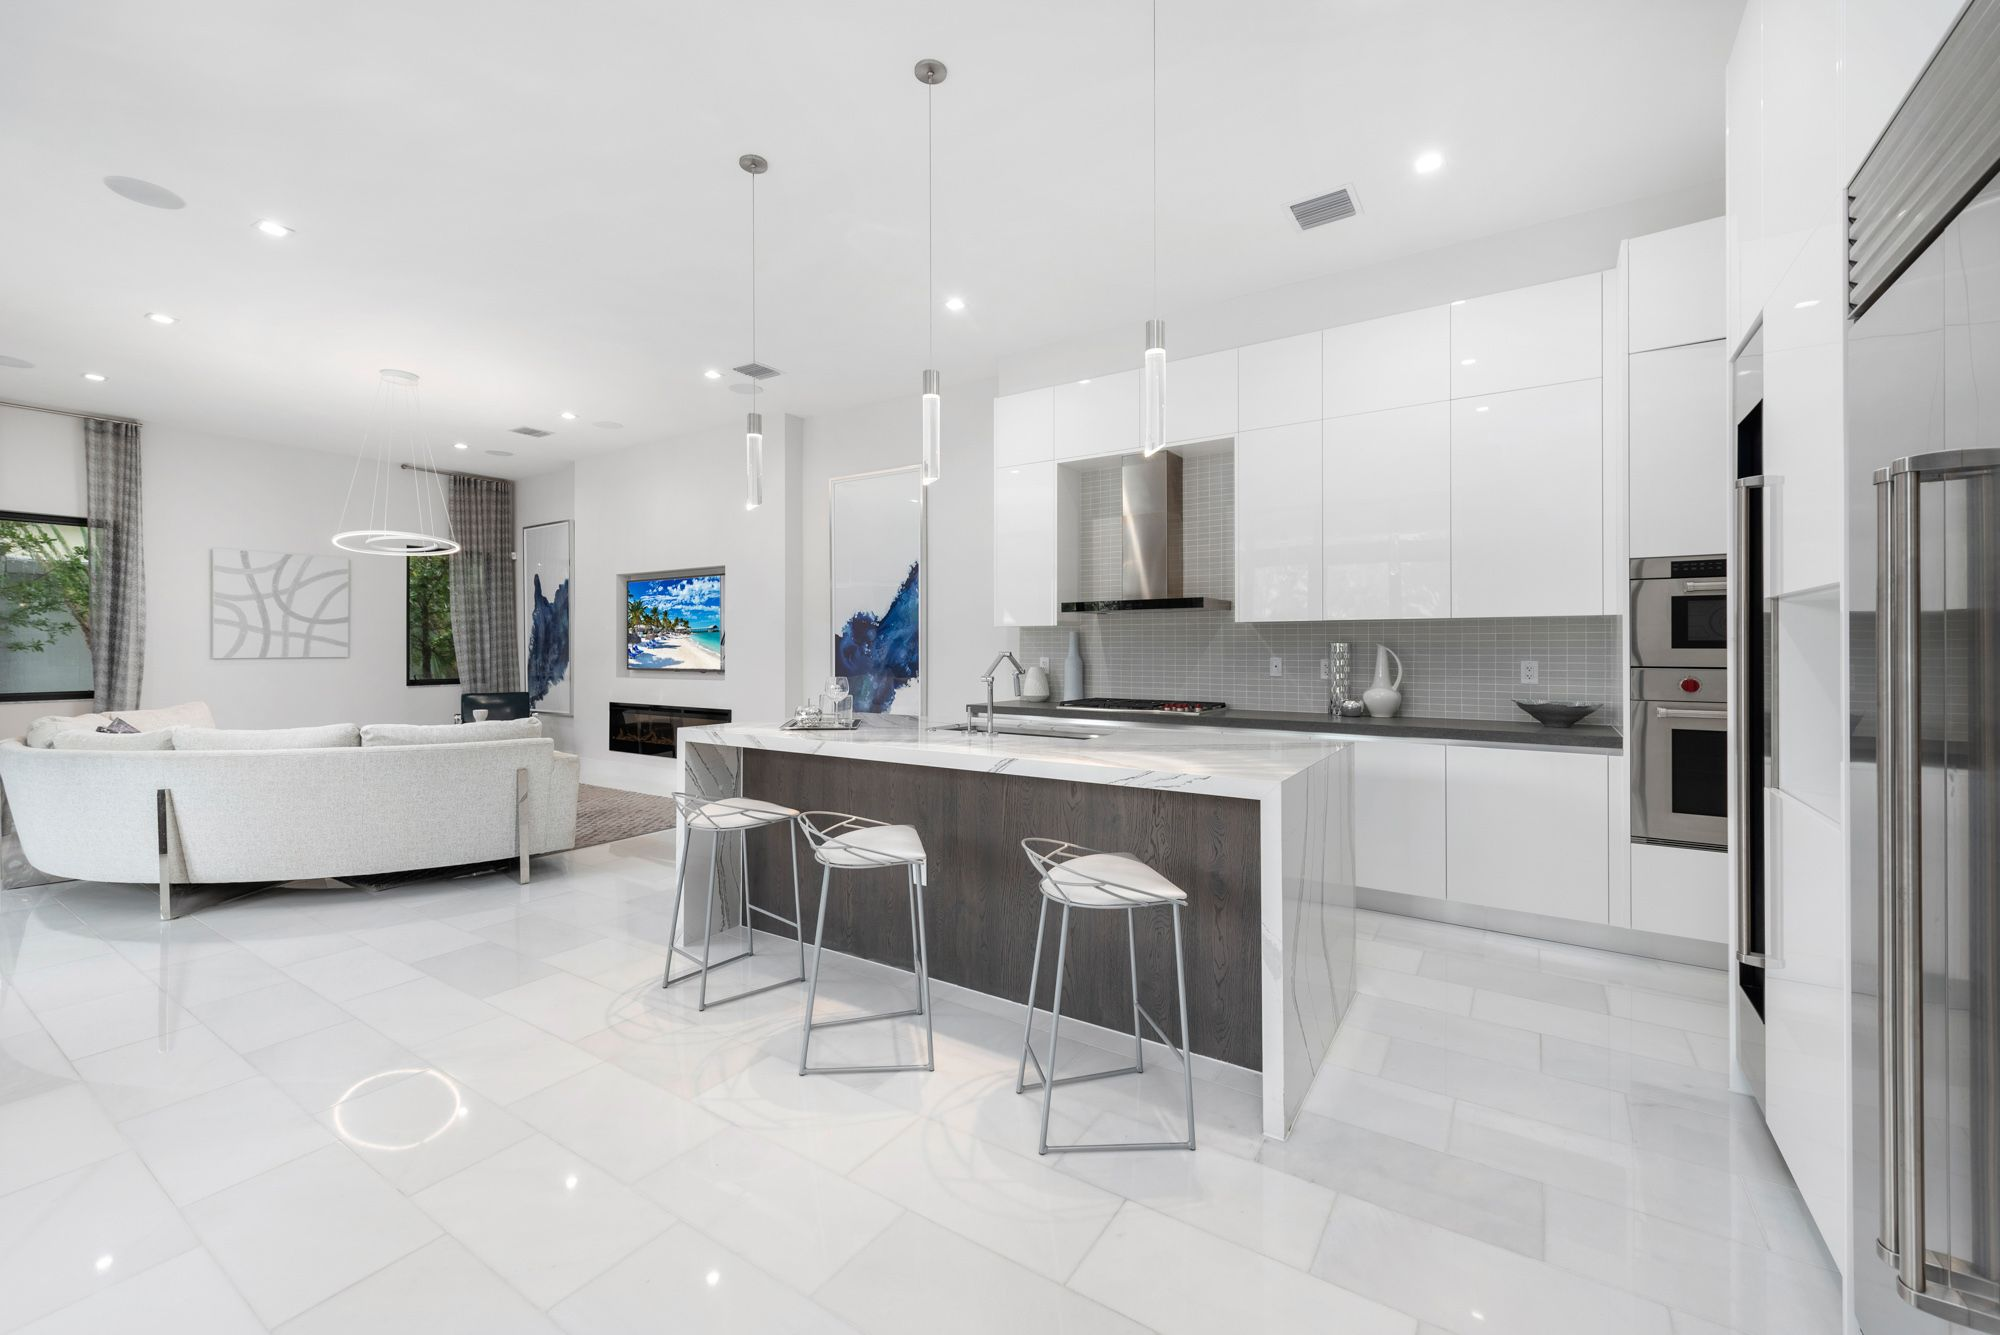 Kitchen featured in the Capri B Two Story By CC Homes in Miami-Dade County, FL